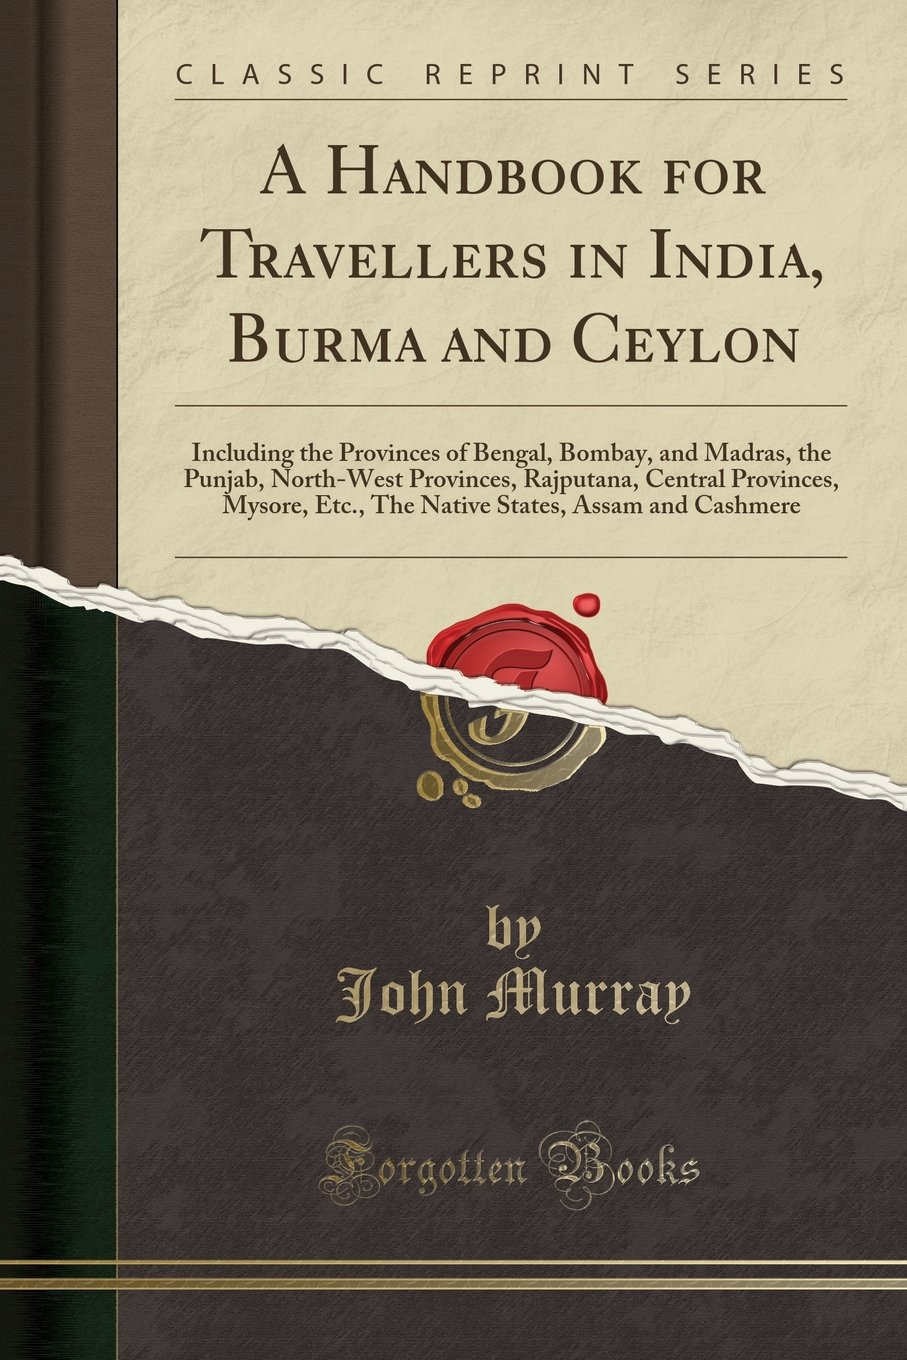 A Handbook for Travellers in India, Burma and Ceylon: Including the Provinces of Bengal, Bombay, and Madras, the Punjab, North-West Provinces. States, Assam and Cashmere (Classic Reprint)